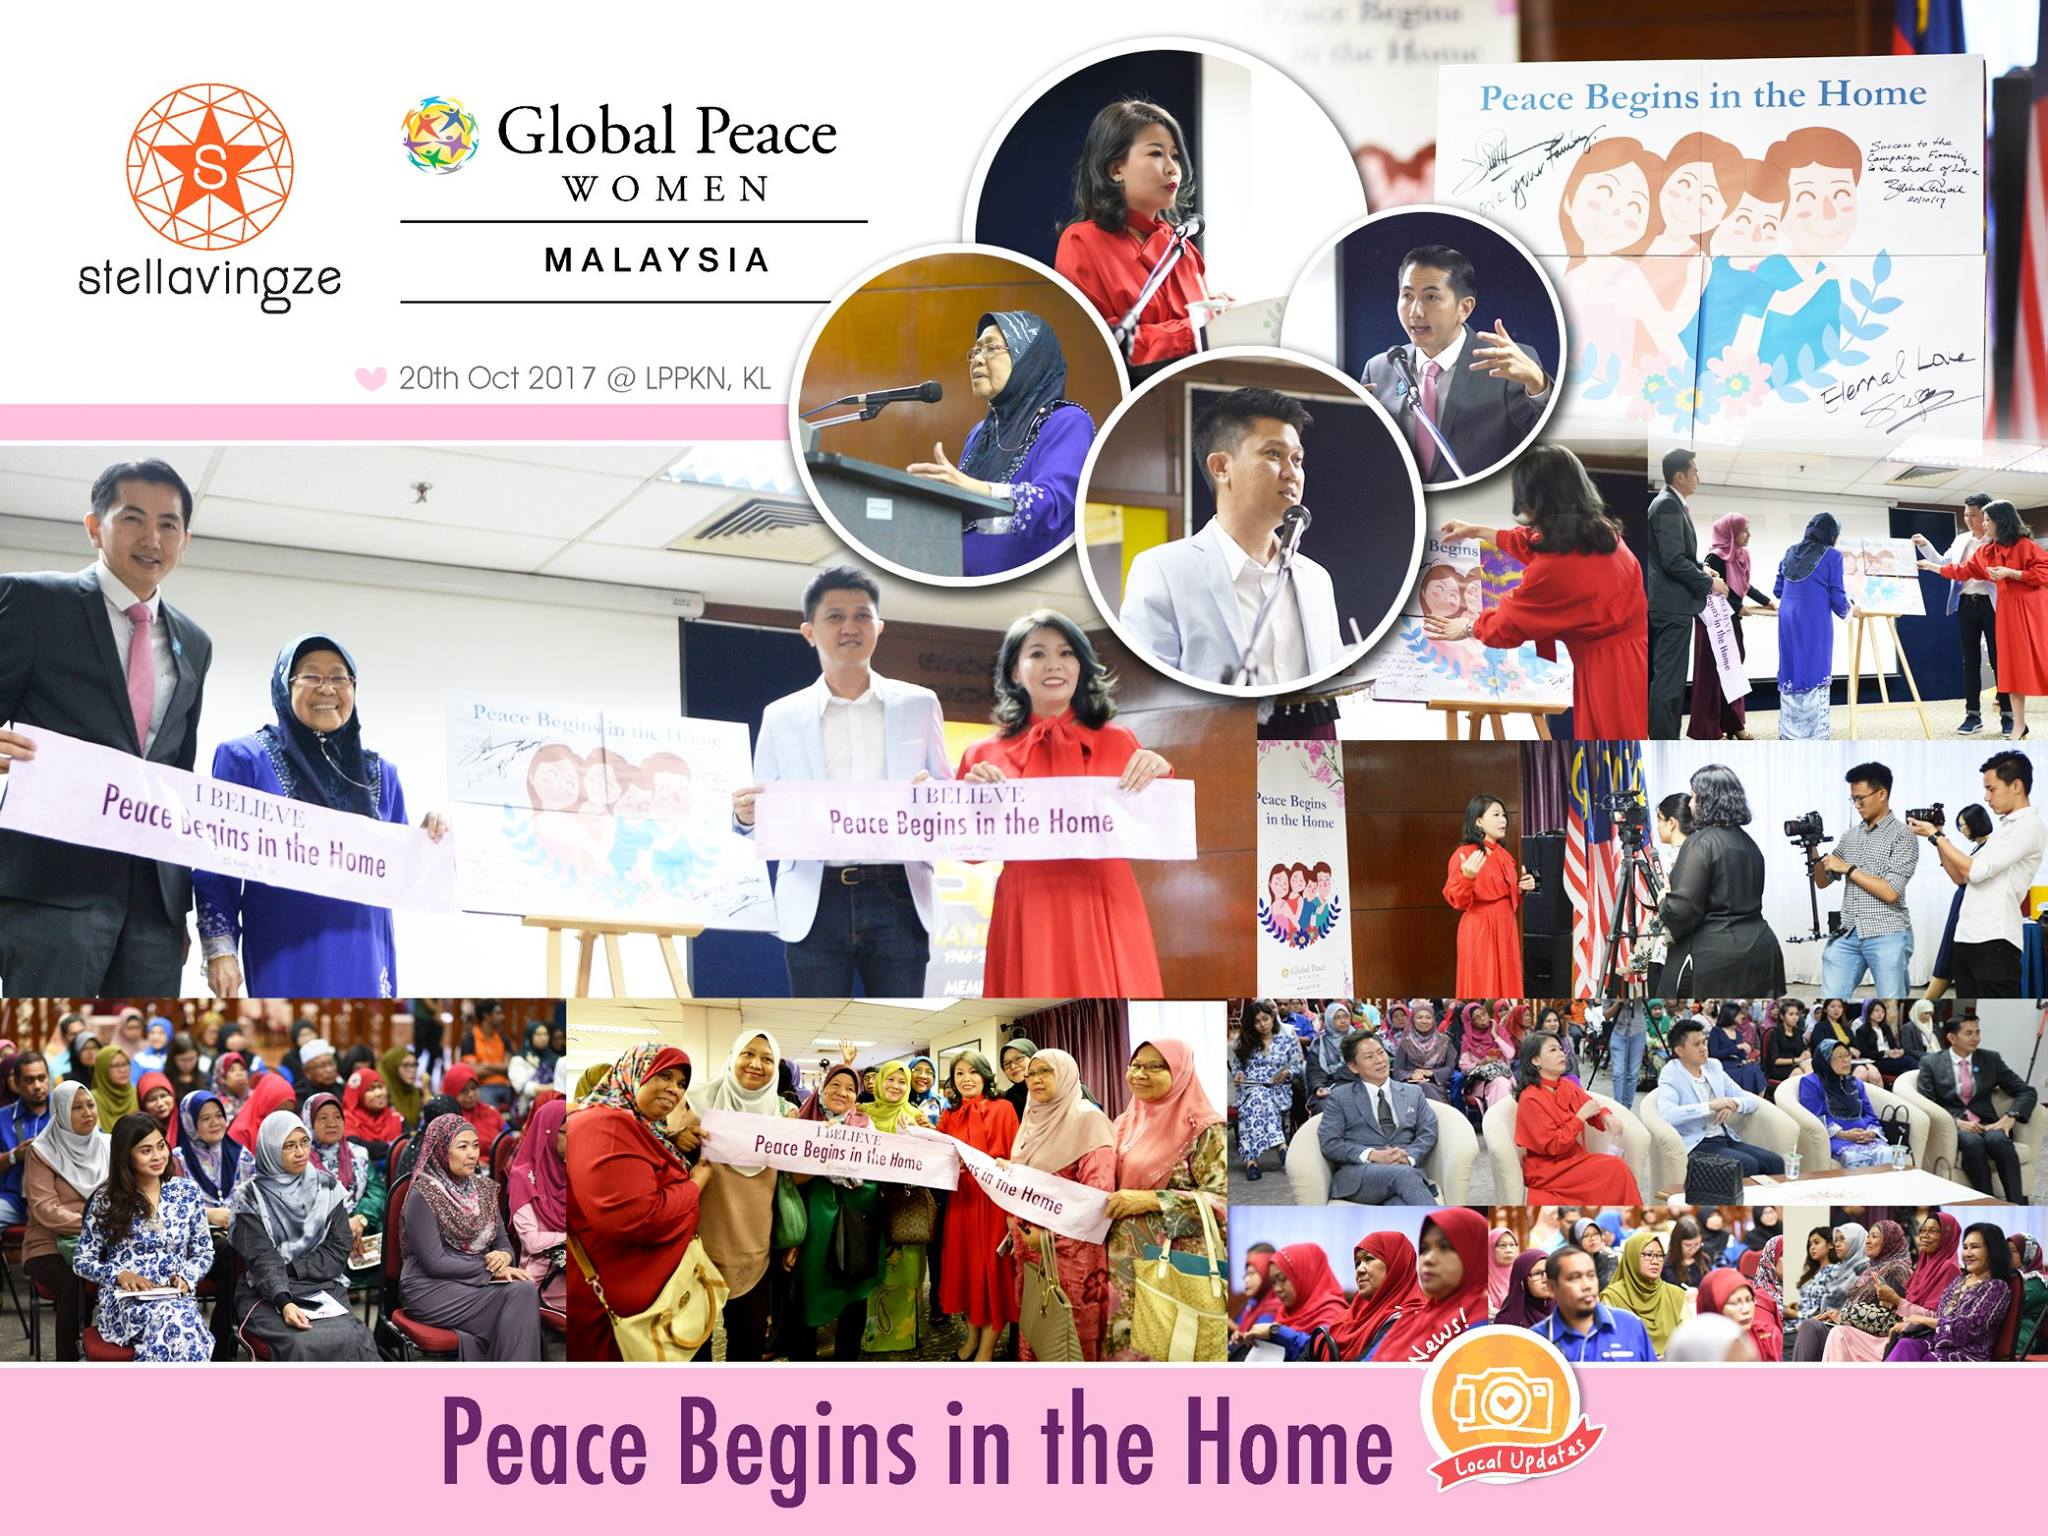 """""""What can you do to promote world peace? Go home and love your family."""" - Mother Teresa   HOME is the place where LOVE, HOPE and DREAMS begins. CHANGE Starts From Home, Peace Begins In The Home!  'Peace Begins in the Home' Campaign has been successfully officiated by the Deputy Minister of Education YB Datuk Chong Sin Woon, Chairman of Global Peace Tan Sri Zaleha Ismail, Chairwoman of Global Peace Women Malaysia, our honorable Stellavingze founder Datuk Stella, and CEO of Global Peace Foundation Malaysia, Dr Teh Su Thye on 20th October 2017.  We are truly honoured to be part of this society changing movement with Global Peace Women Malaysia, and initiate this program with Family Is The School Of Love workshop in November!  #StellavingzeInternational  #PeaceBeginsInTheHome  #GlobalPeaceWomenMalaysia  #GlobalPeaceFoundation  #FamilyIsTheSchoolOfLove"""